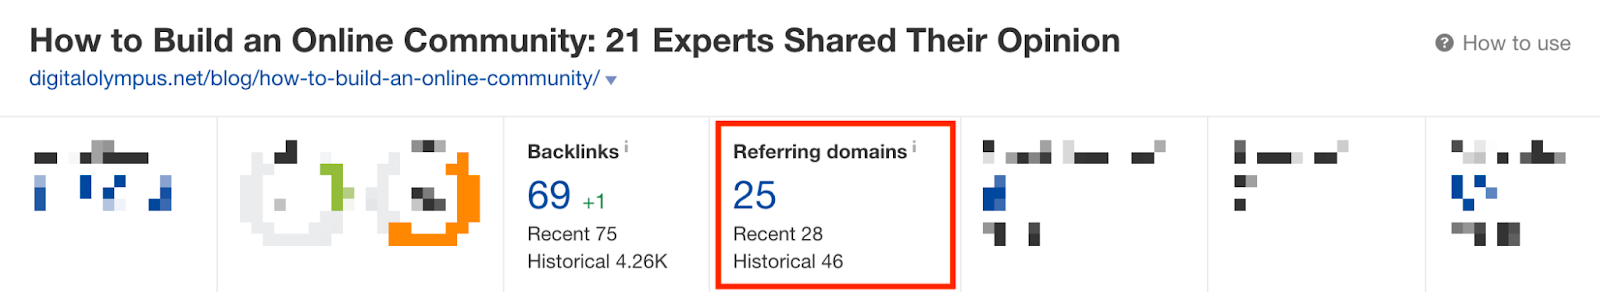 Number of domains linking to the expert roundup